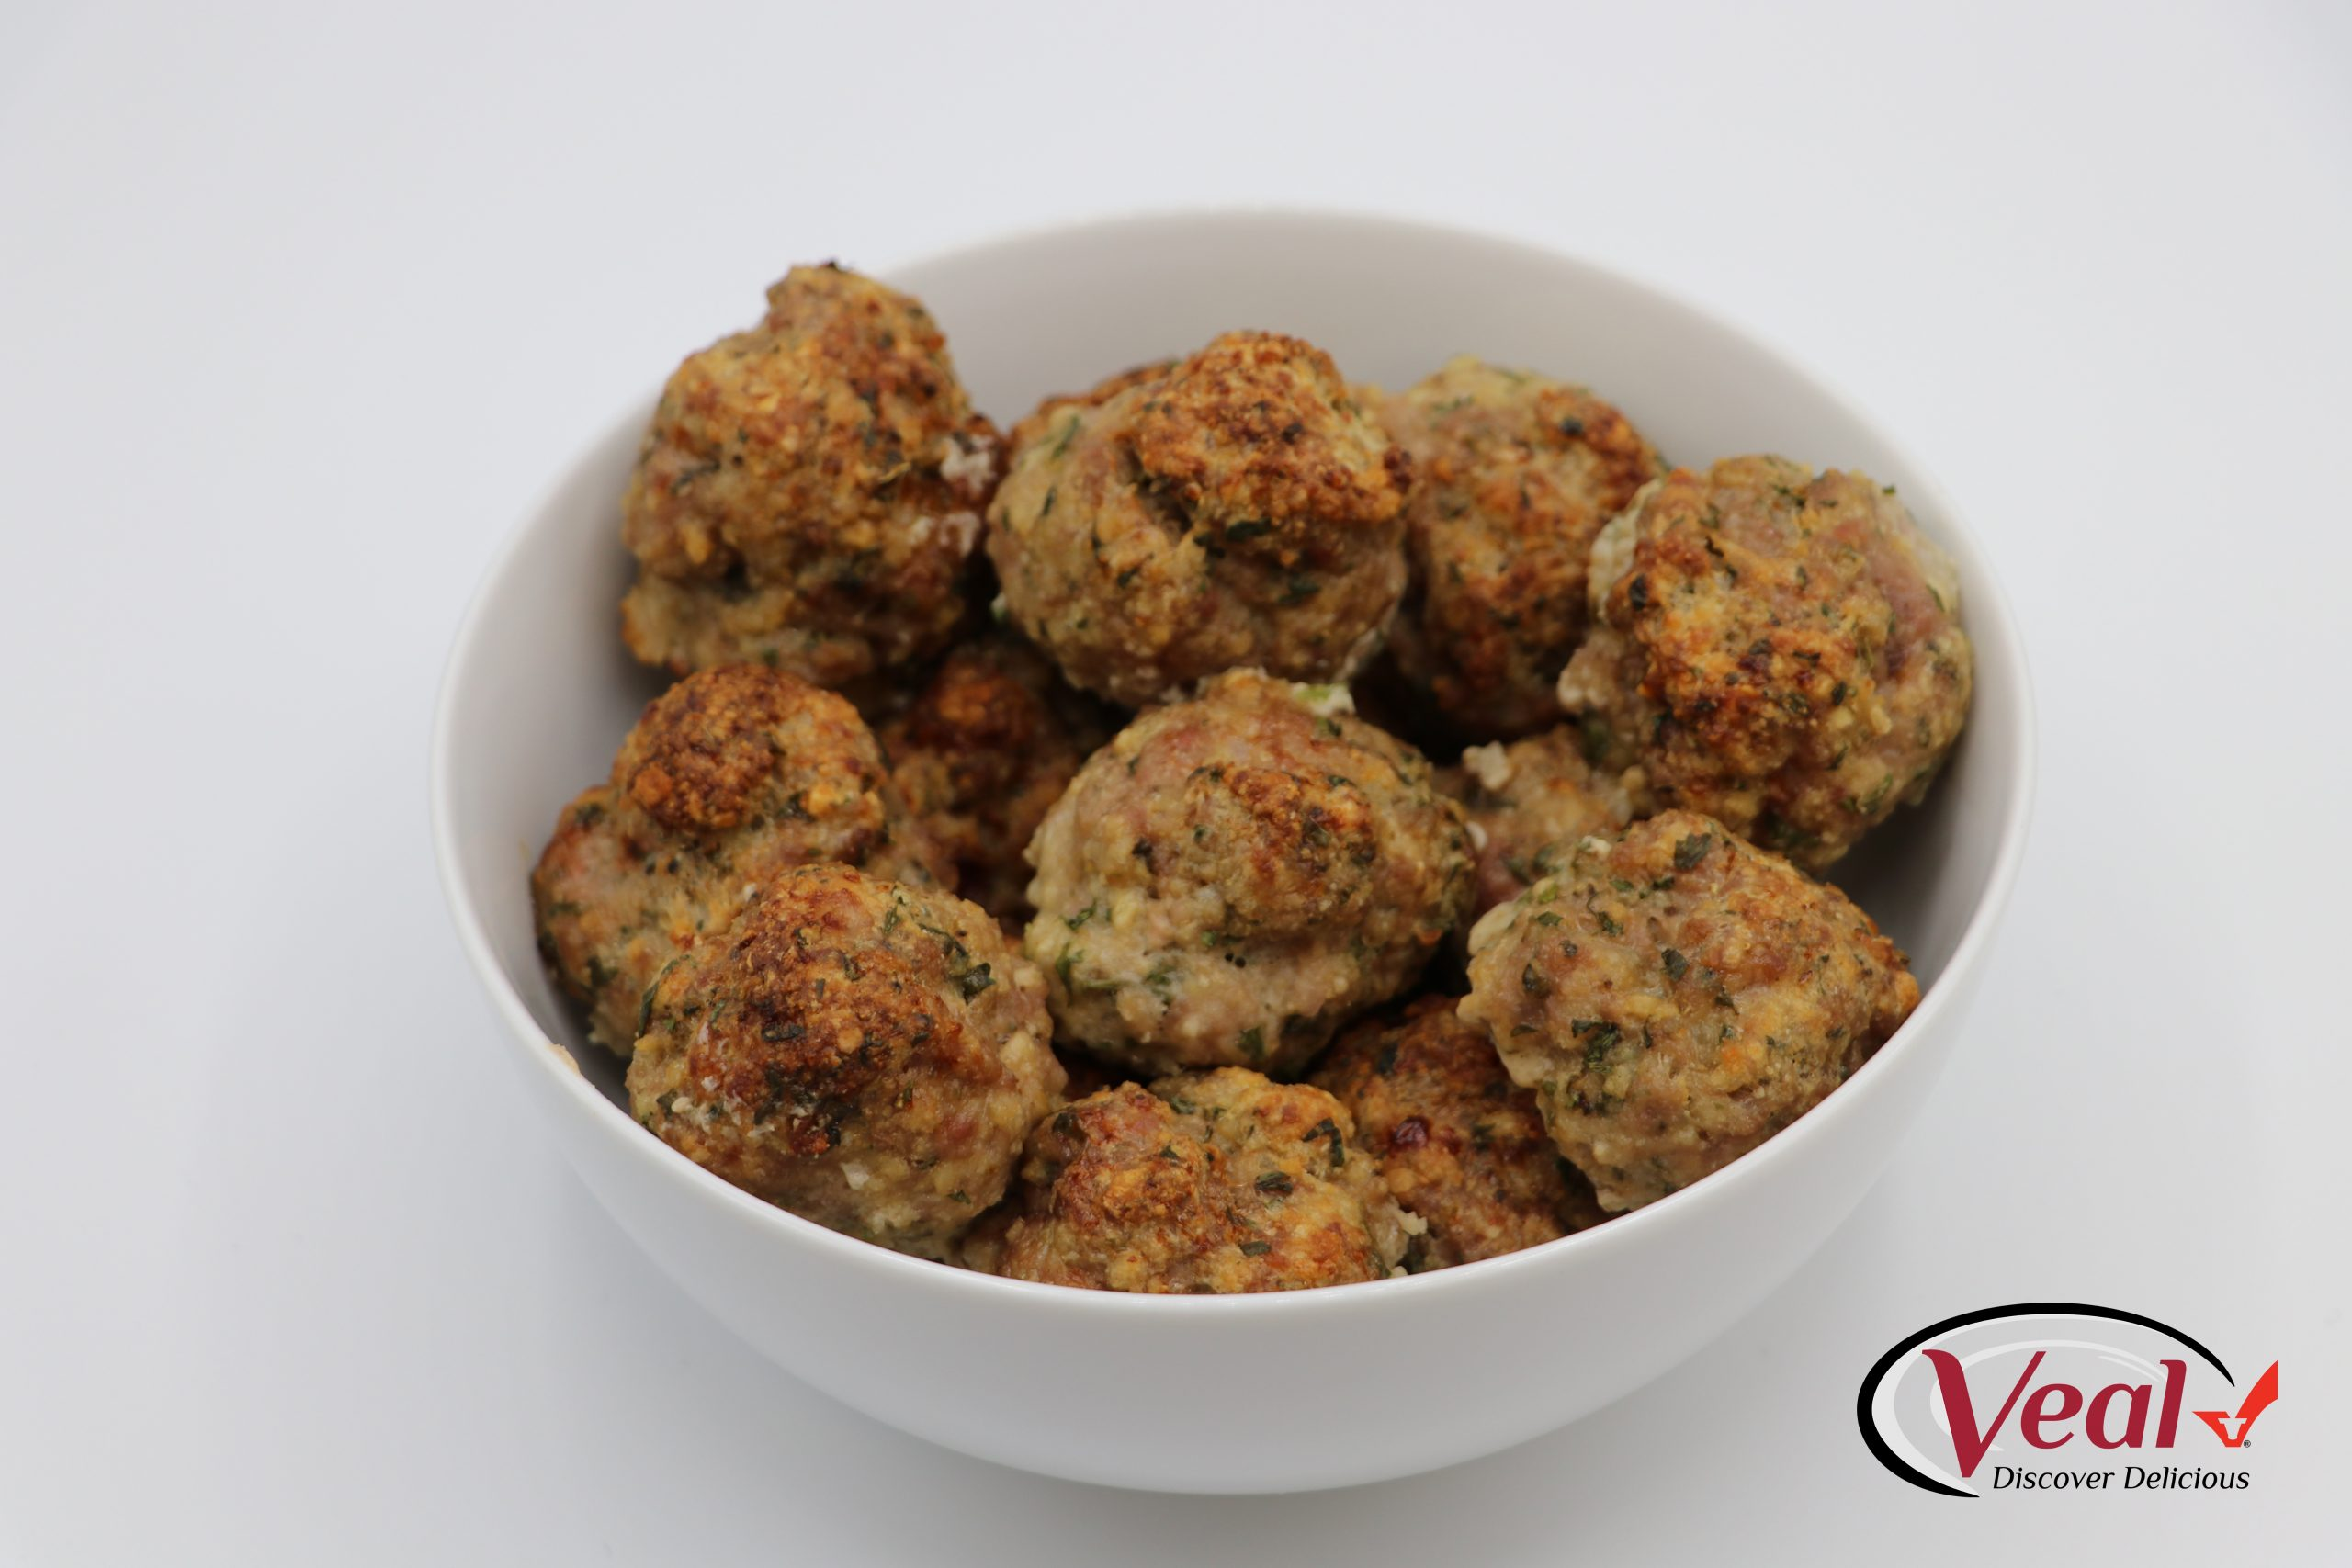 Oven Baked Veal Meatballs